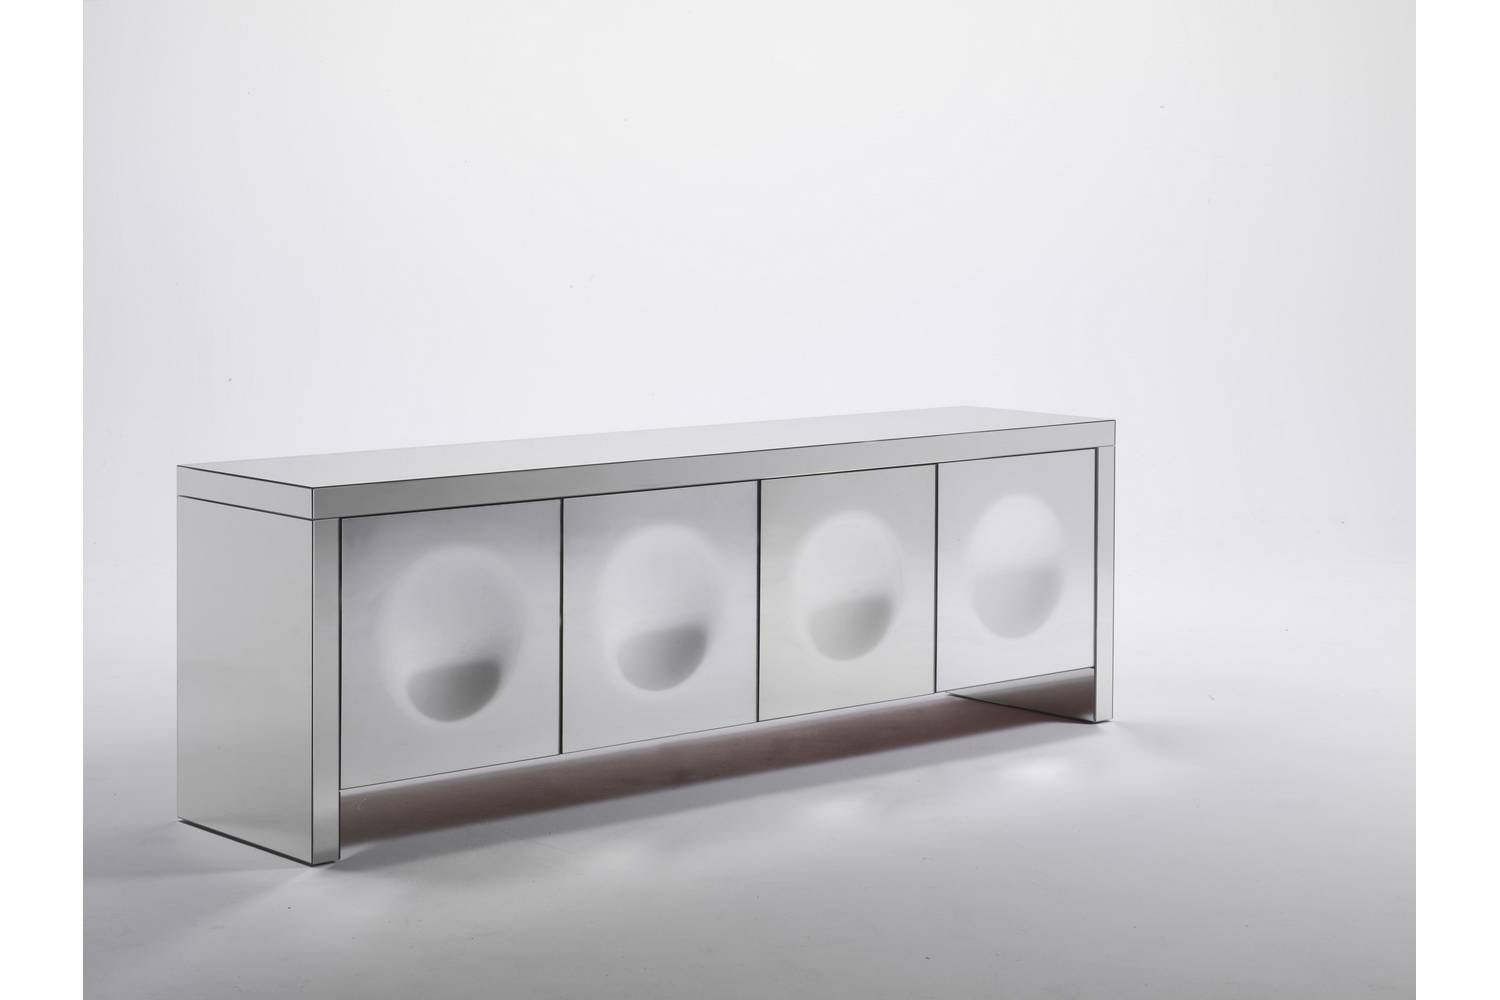 Empire Sideboard by G. Carollo for Porada